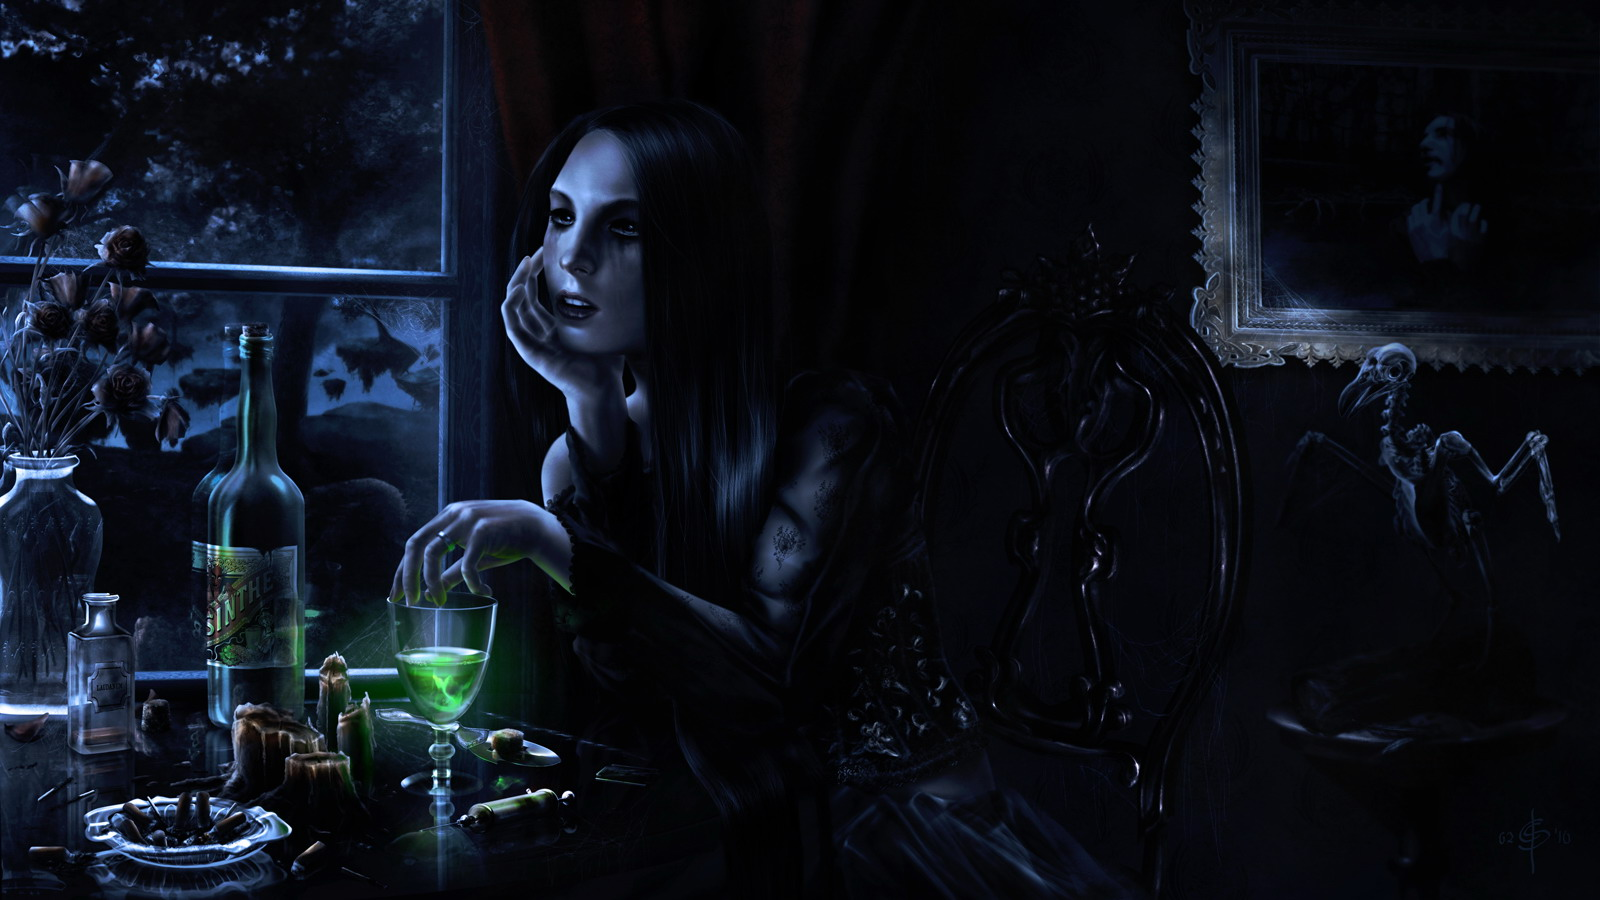 Fantasy - Vampire Wallpaper | Vampyr | Pinterest | Wallpaper